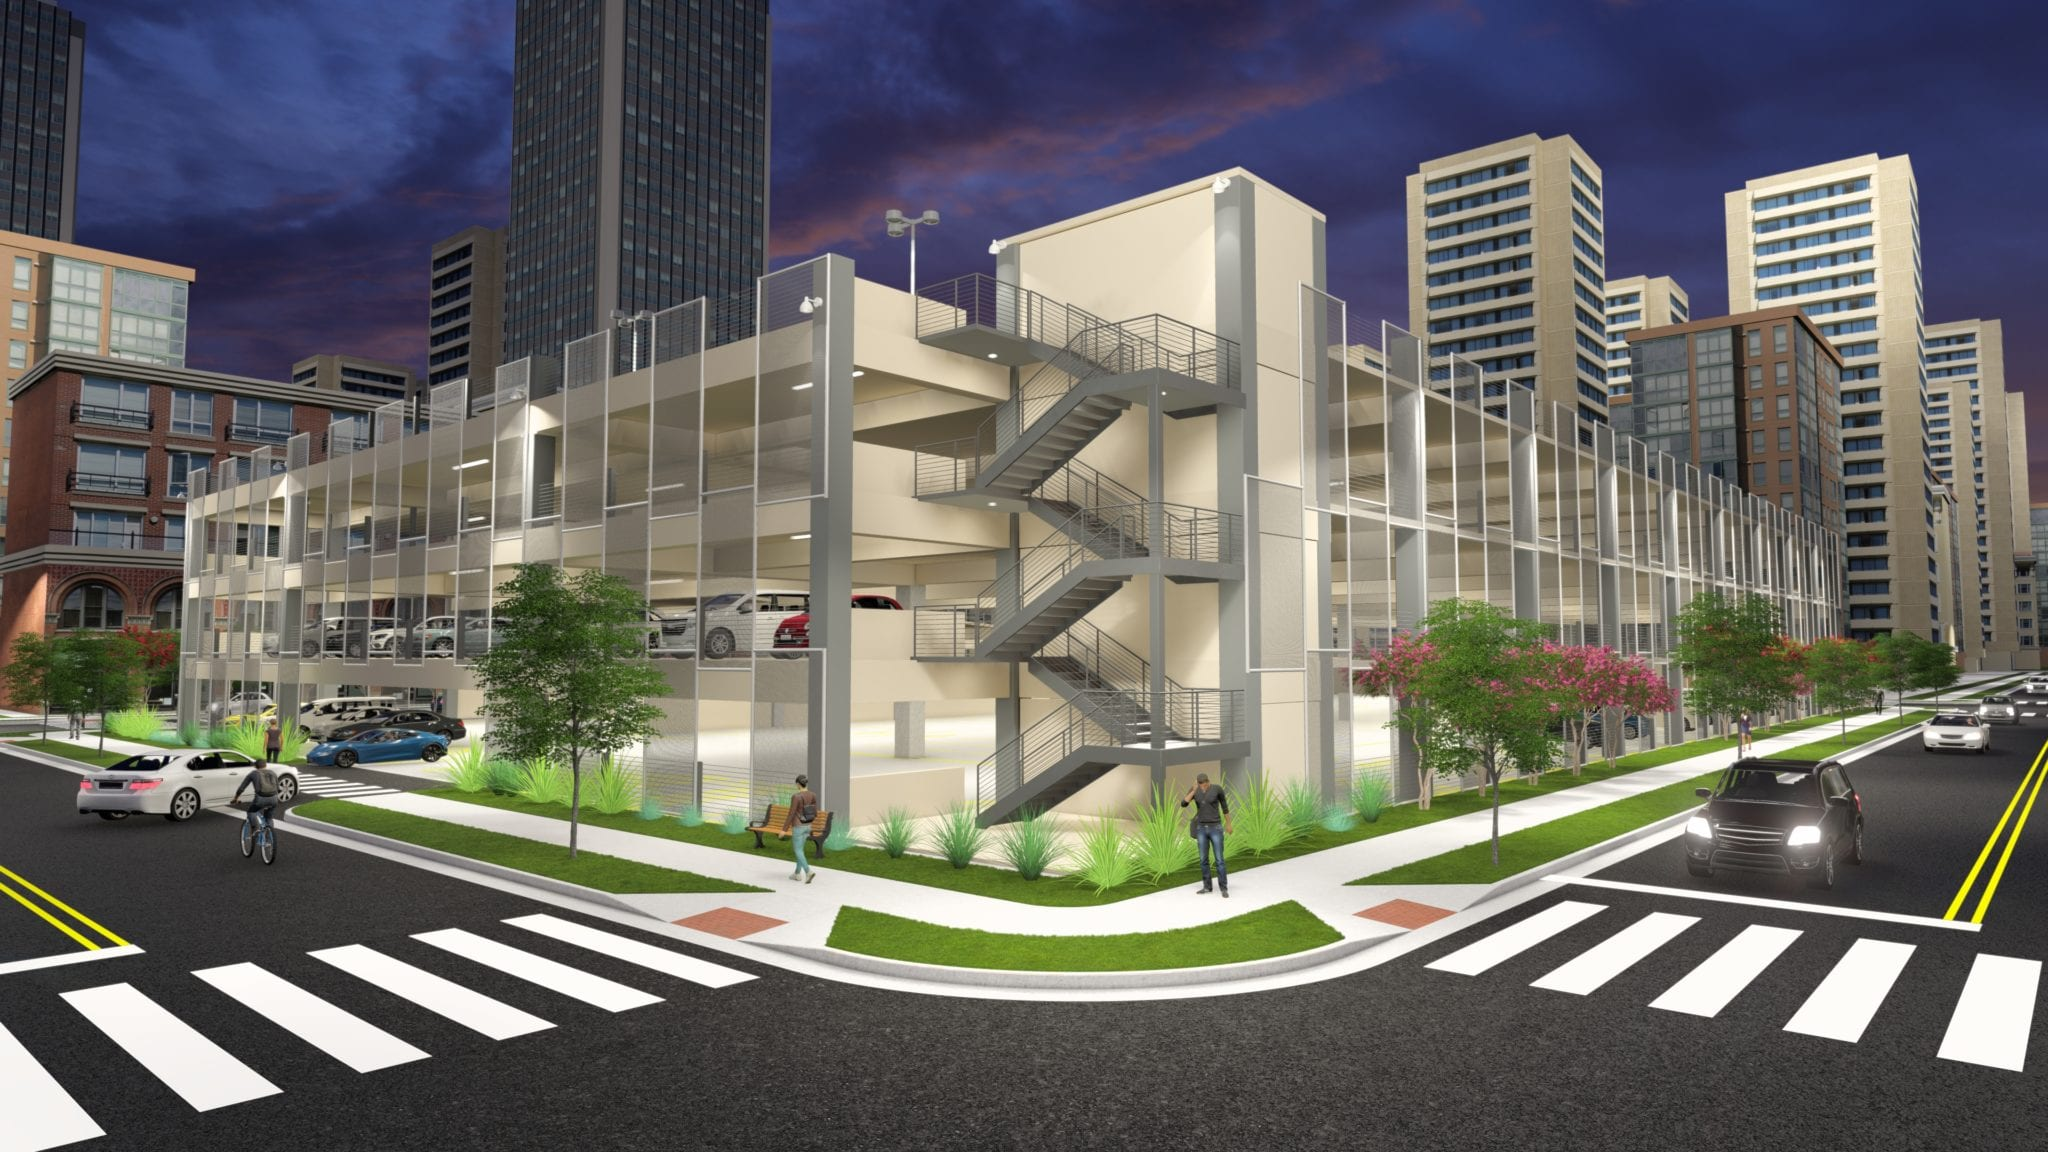 3D Rendering of Parking Garage